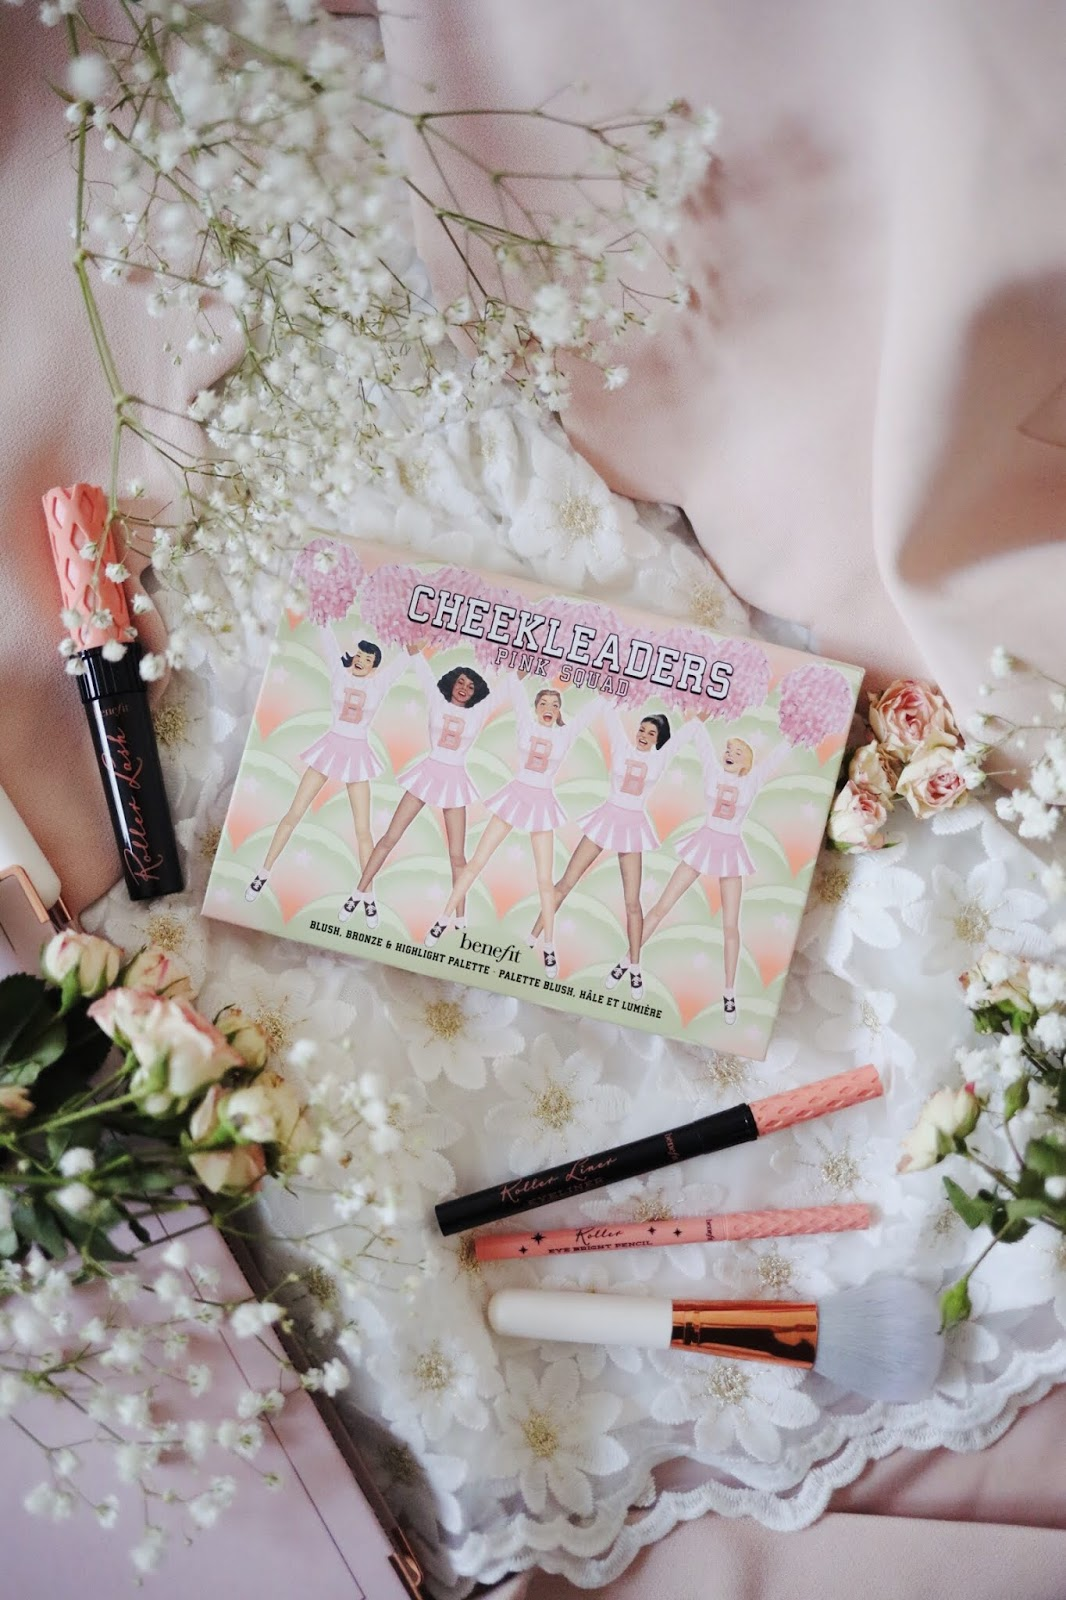 CHEEKLEADERS PINK SQUAD , BENEFIT, CHEEKLEADERS BRONZE SQUAD , BENEFIT FRANCE , ROSEMADEMOISELLE , ROSE MADEMOISELLE , BLOG BEAUTE , PARIS